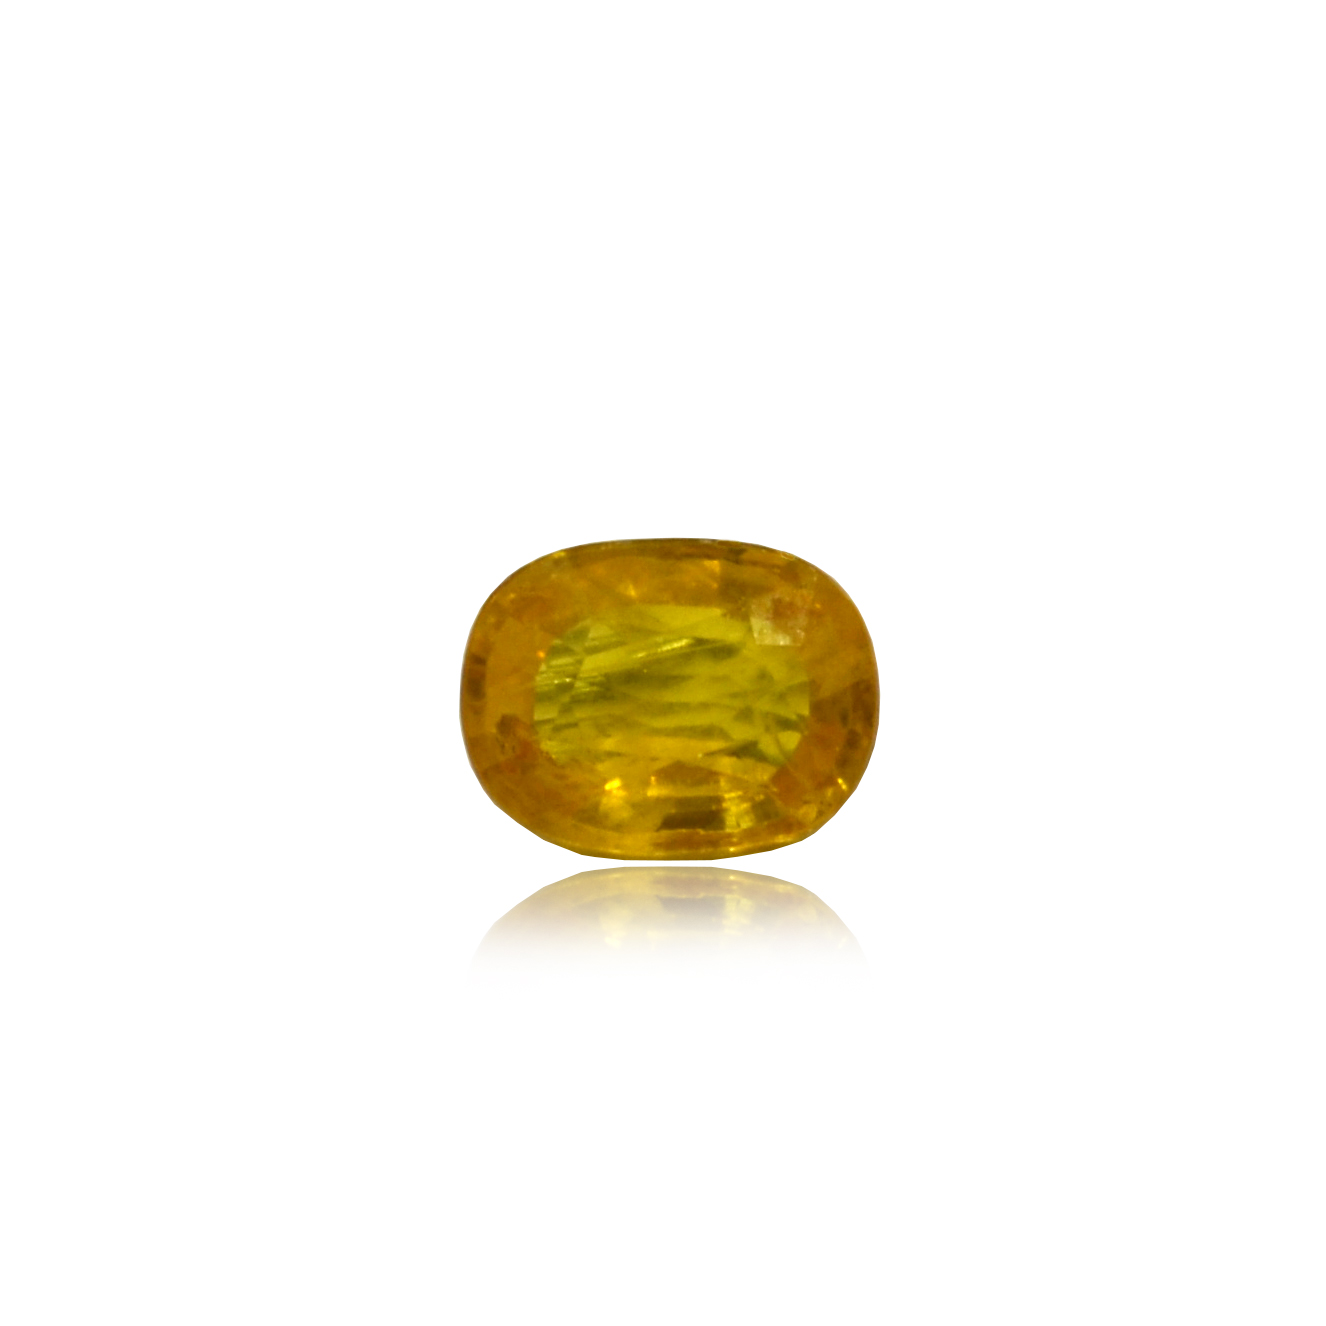 4.75 CARAT, OVAL MIXED CUT NATURAL YELLOW SAPPHIRE